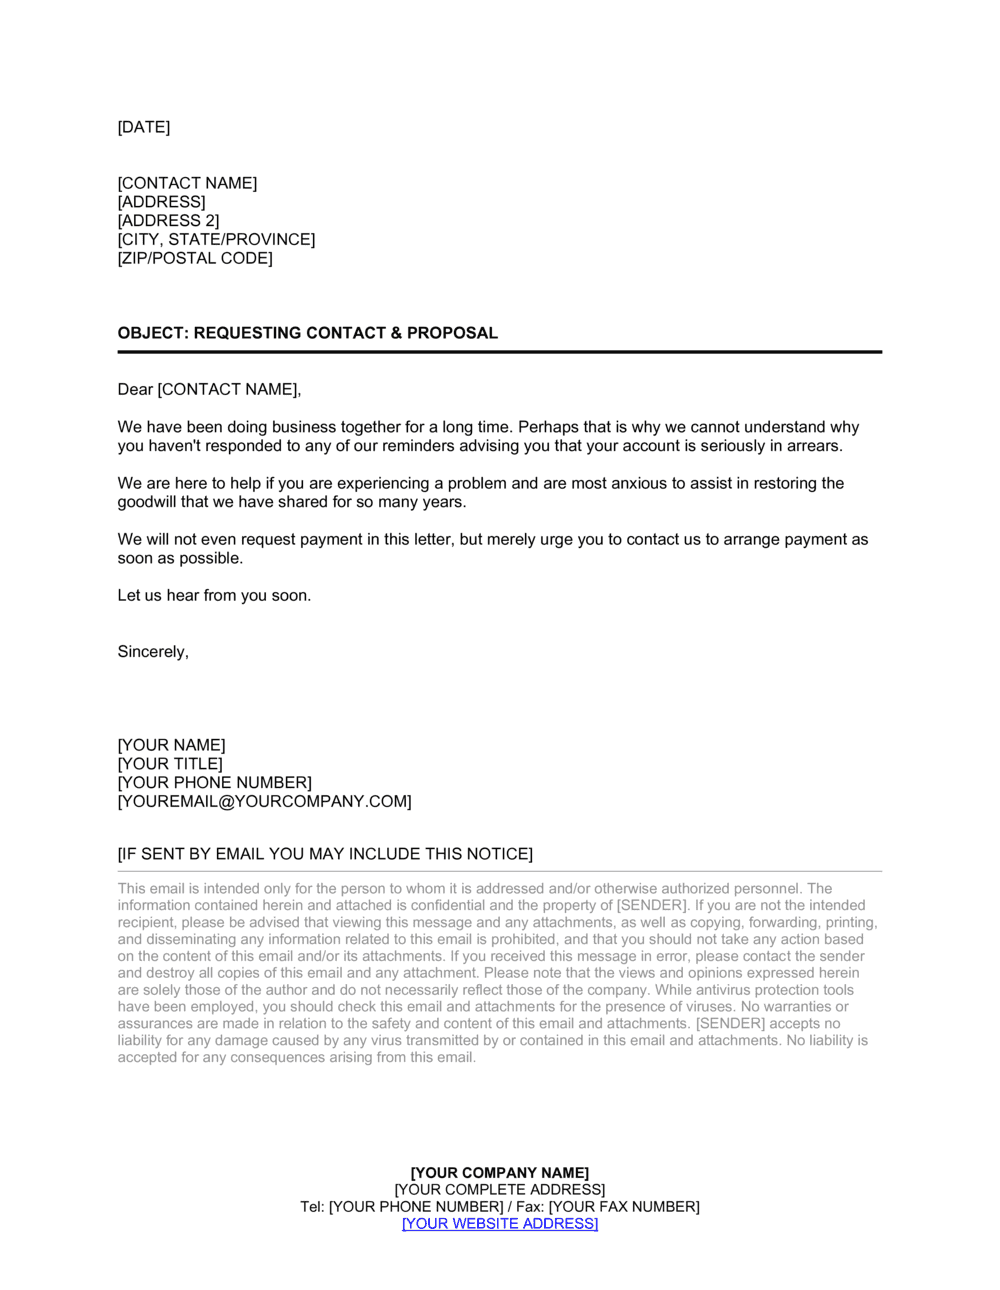 Business-in-a-Box's Collection Letter Requesting Contact and Proposal Template